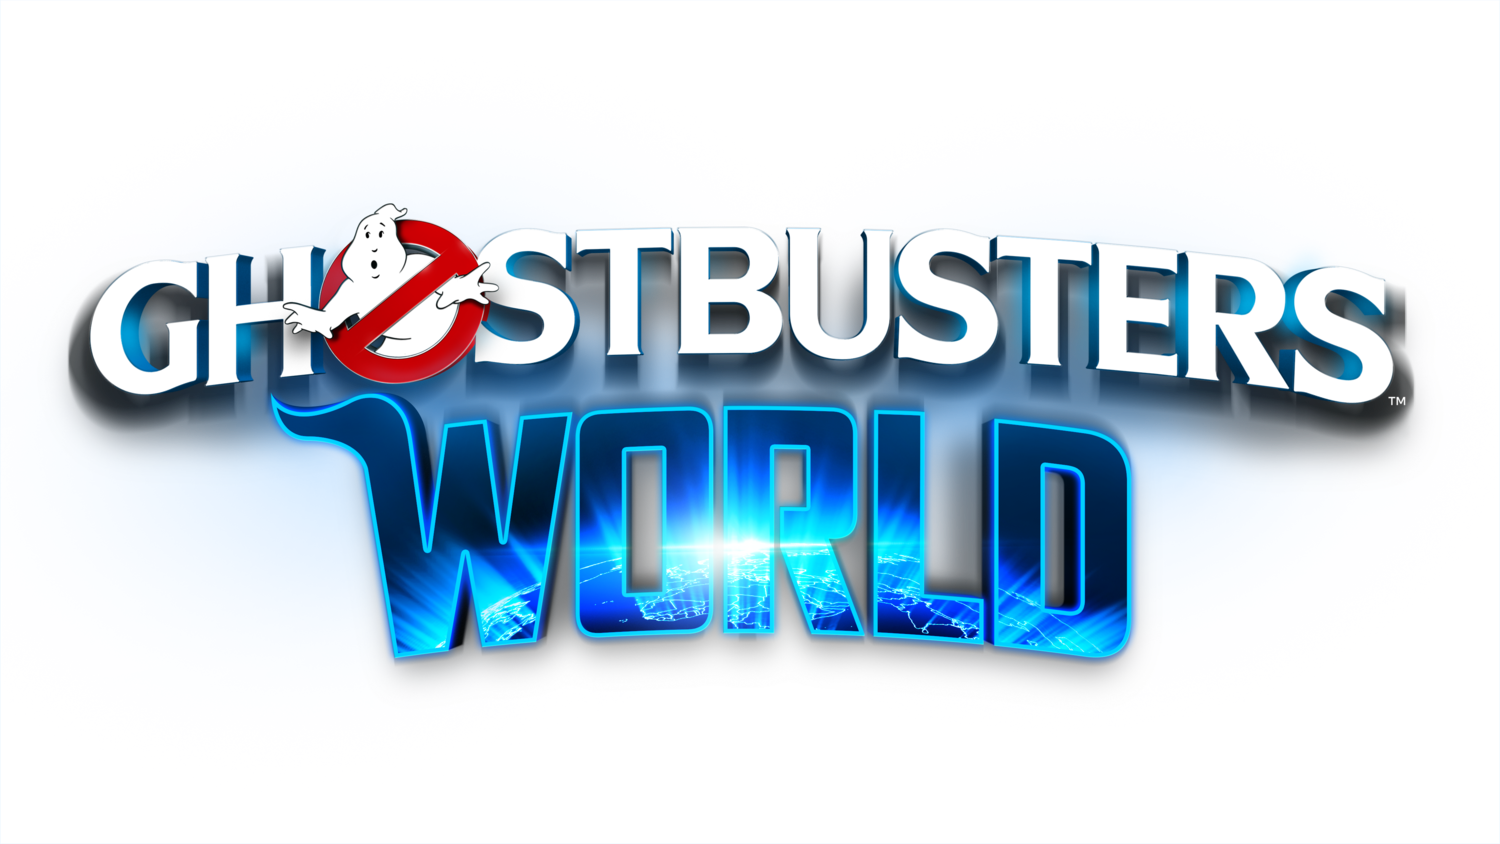 Slimer drawing ghostbusters logo. Hq new world gameplay